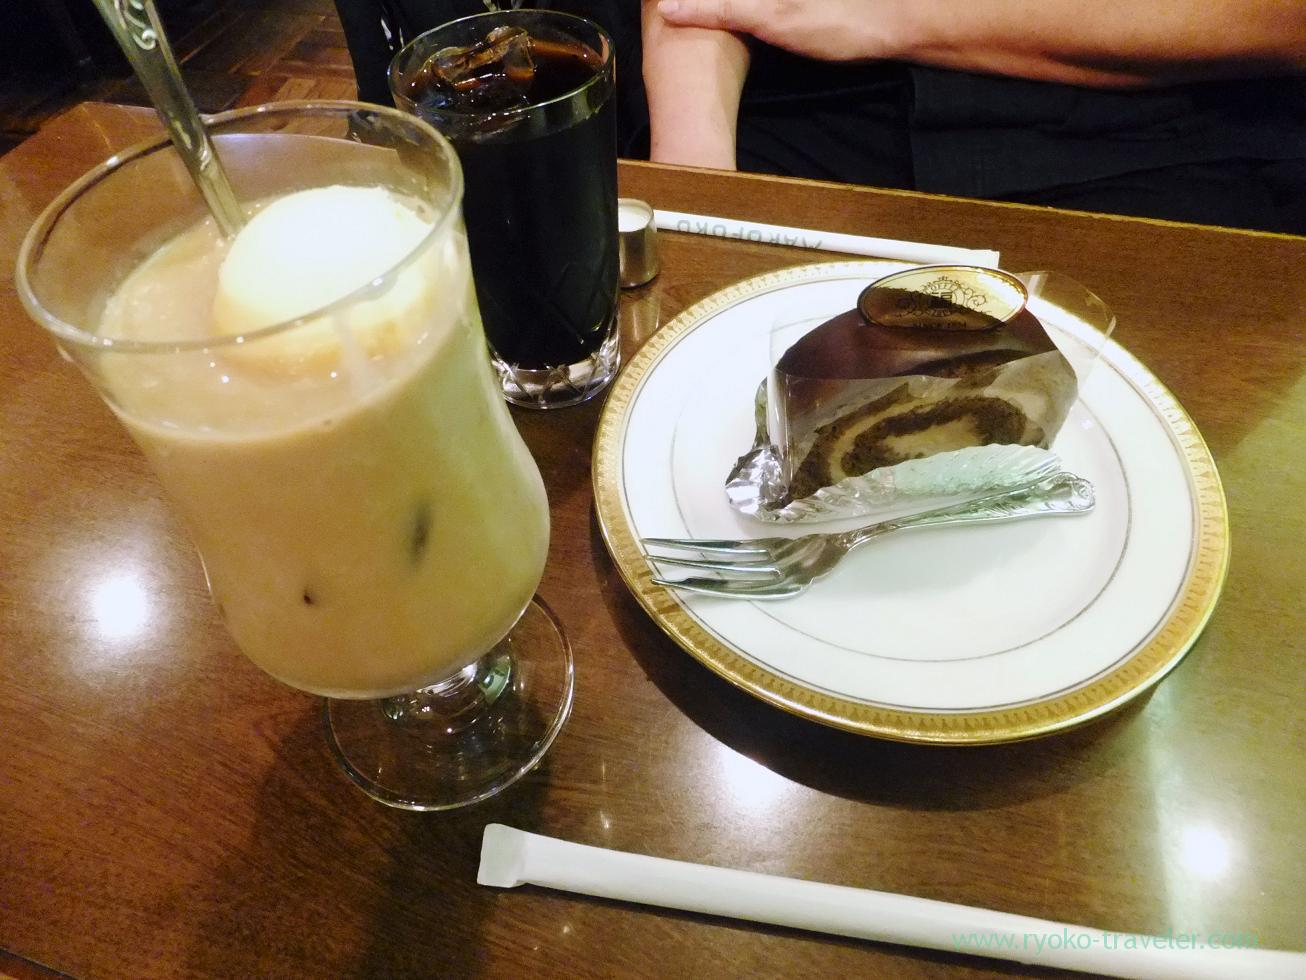 Cafe au lait float and cake, Marufuku Coffee-ten Sennichimae Honten, Nipponbashi (Trip to Osaka 201504)